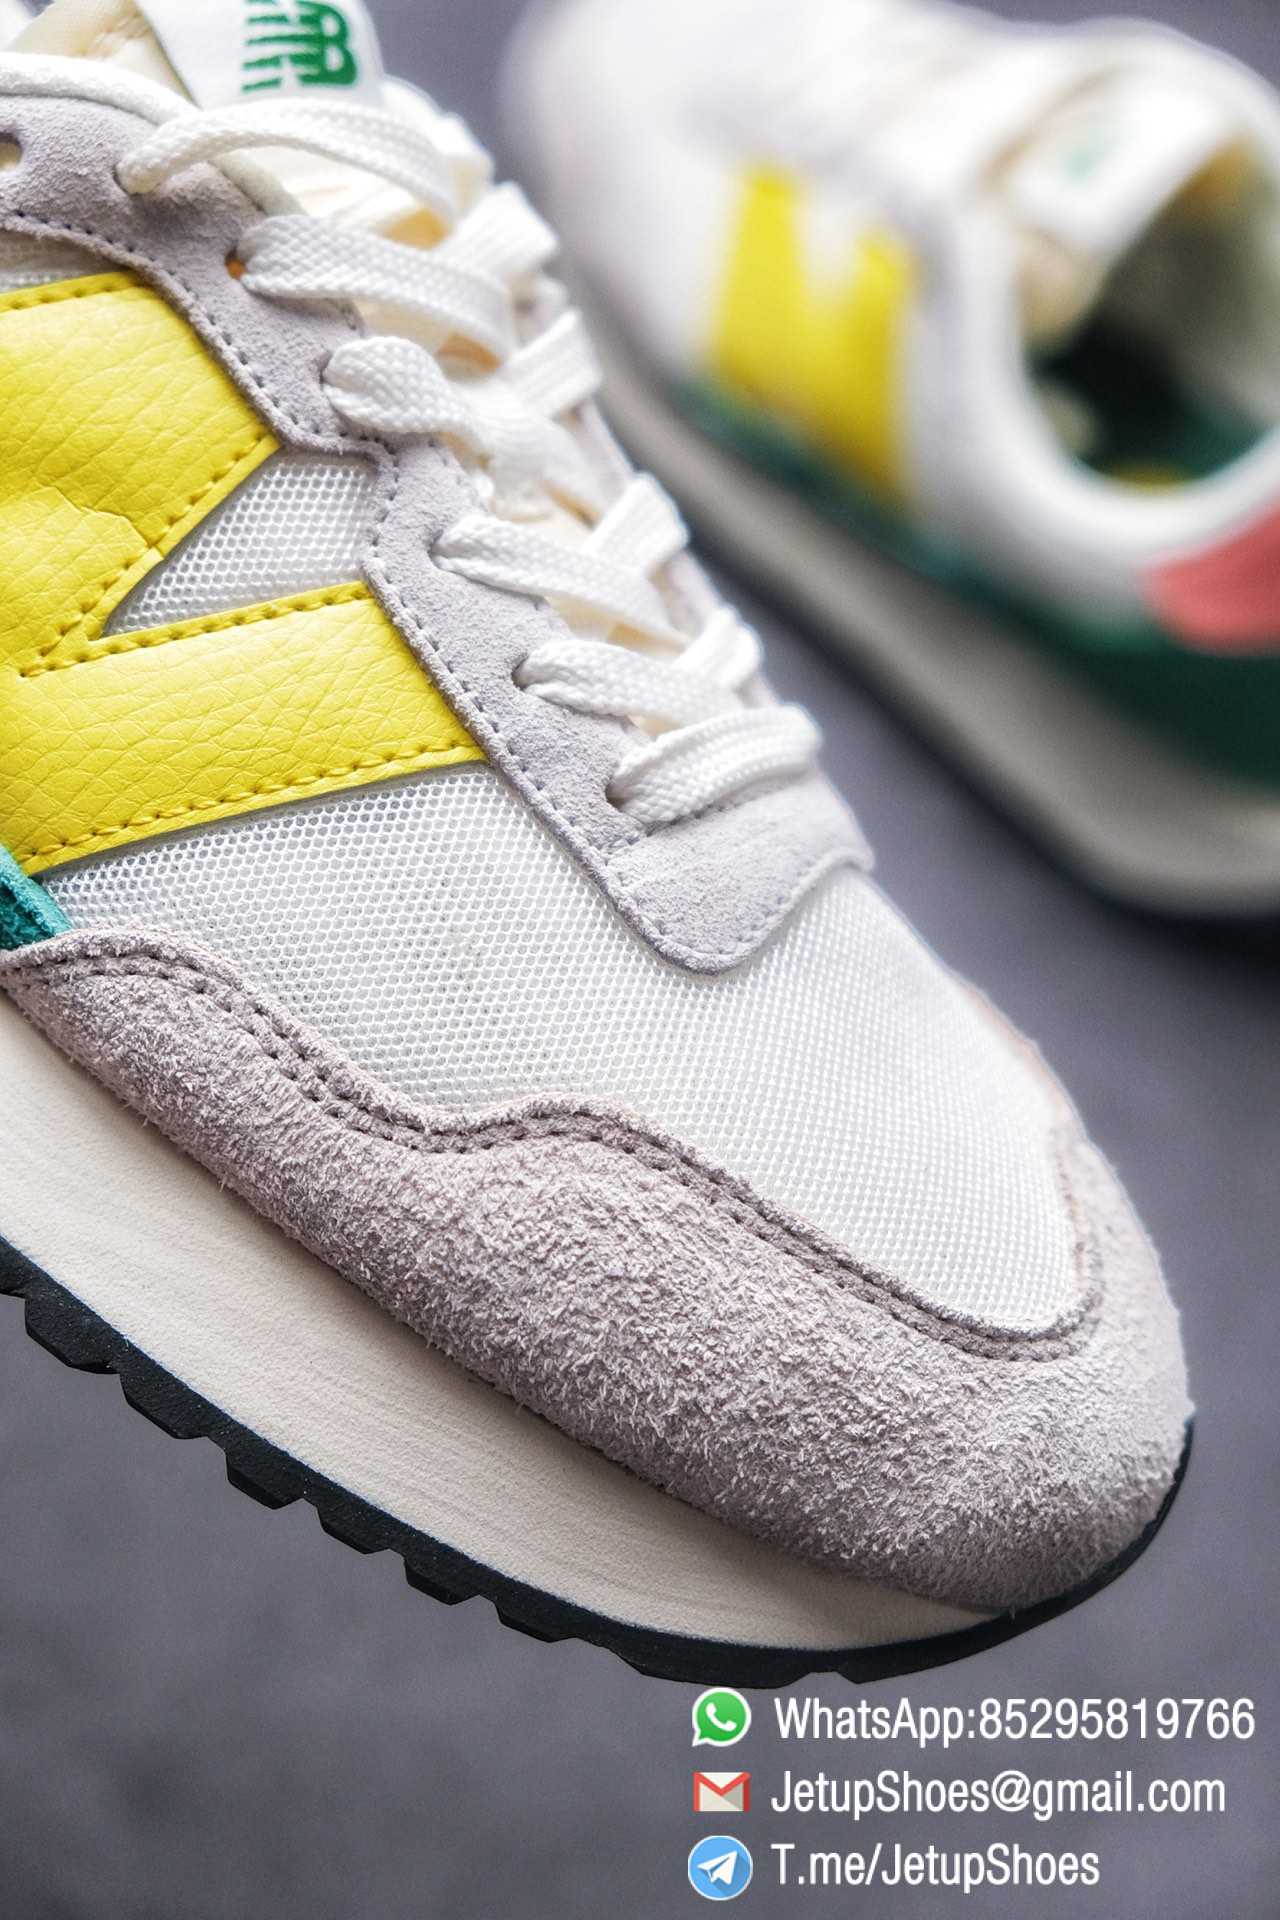 Best Replica New Balance 237 Light Grey Yellow Green Pink Multi Color SKU MS237AS1 High Quality Running Shoes 05